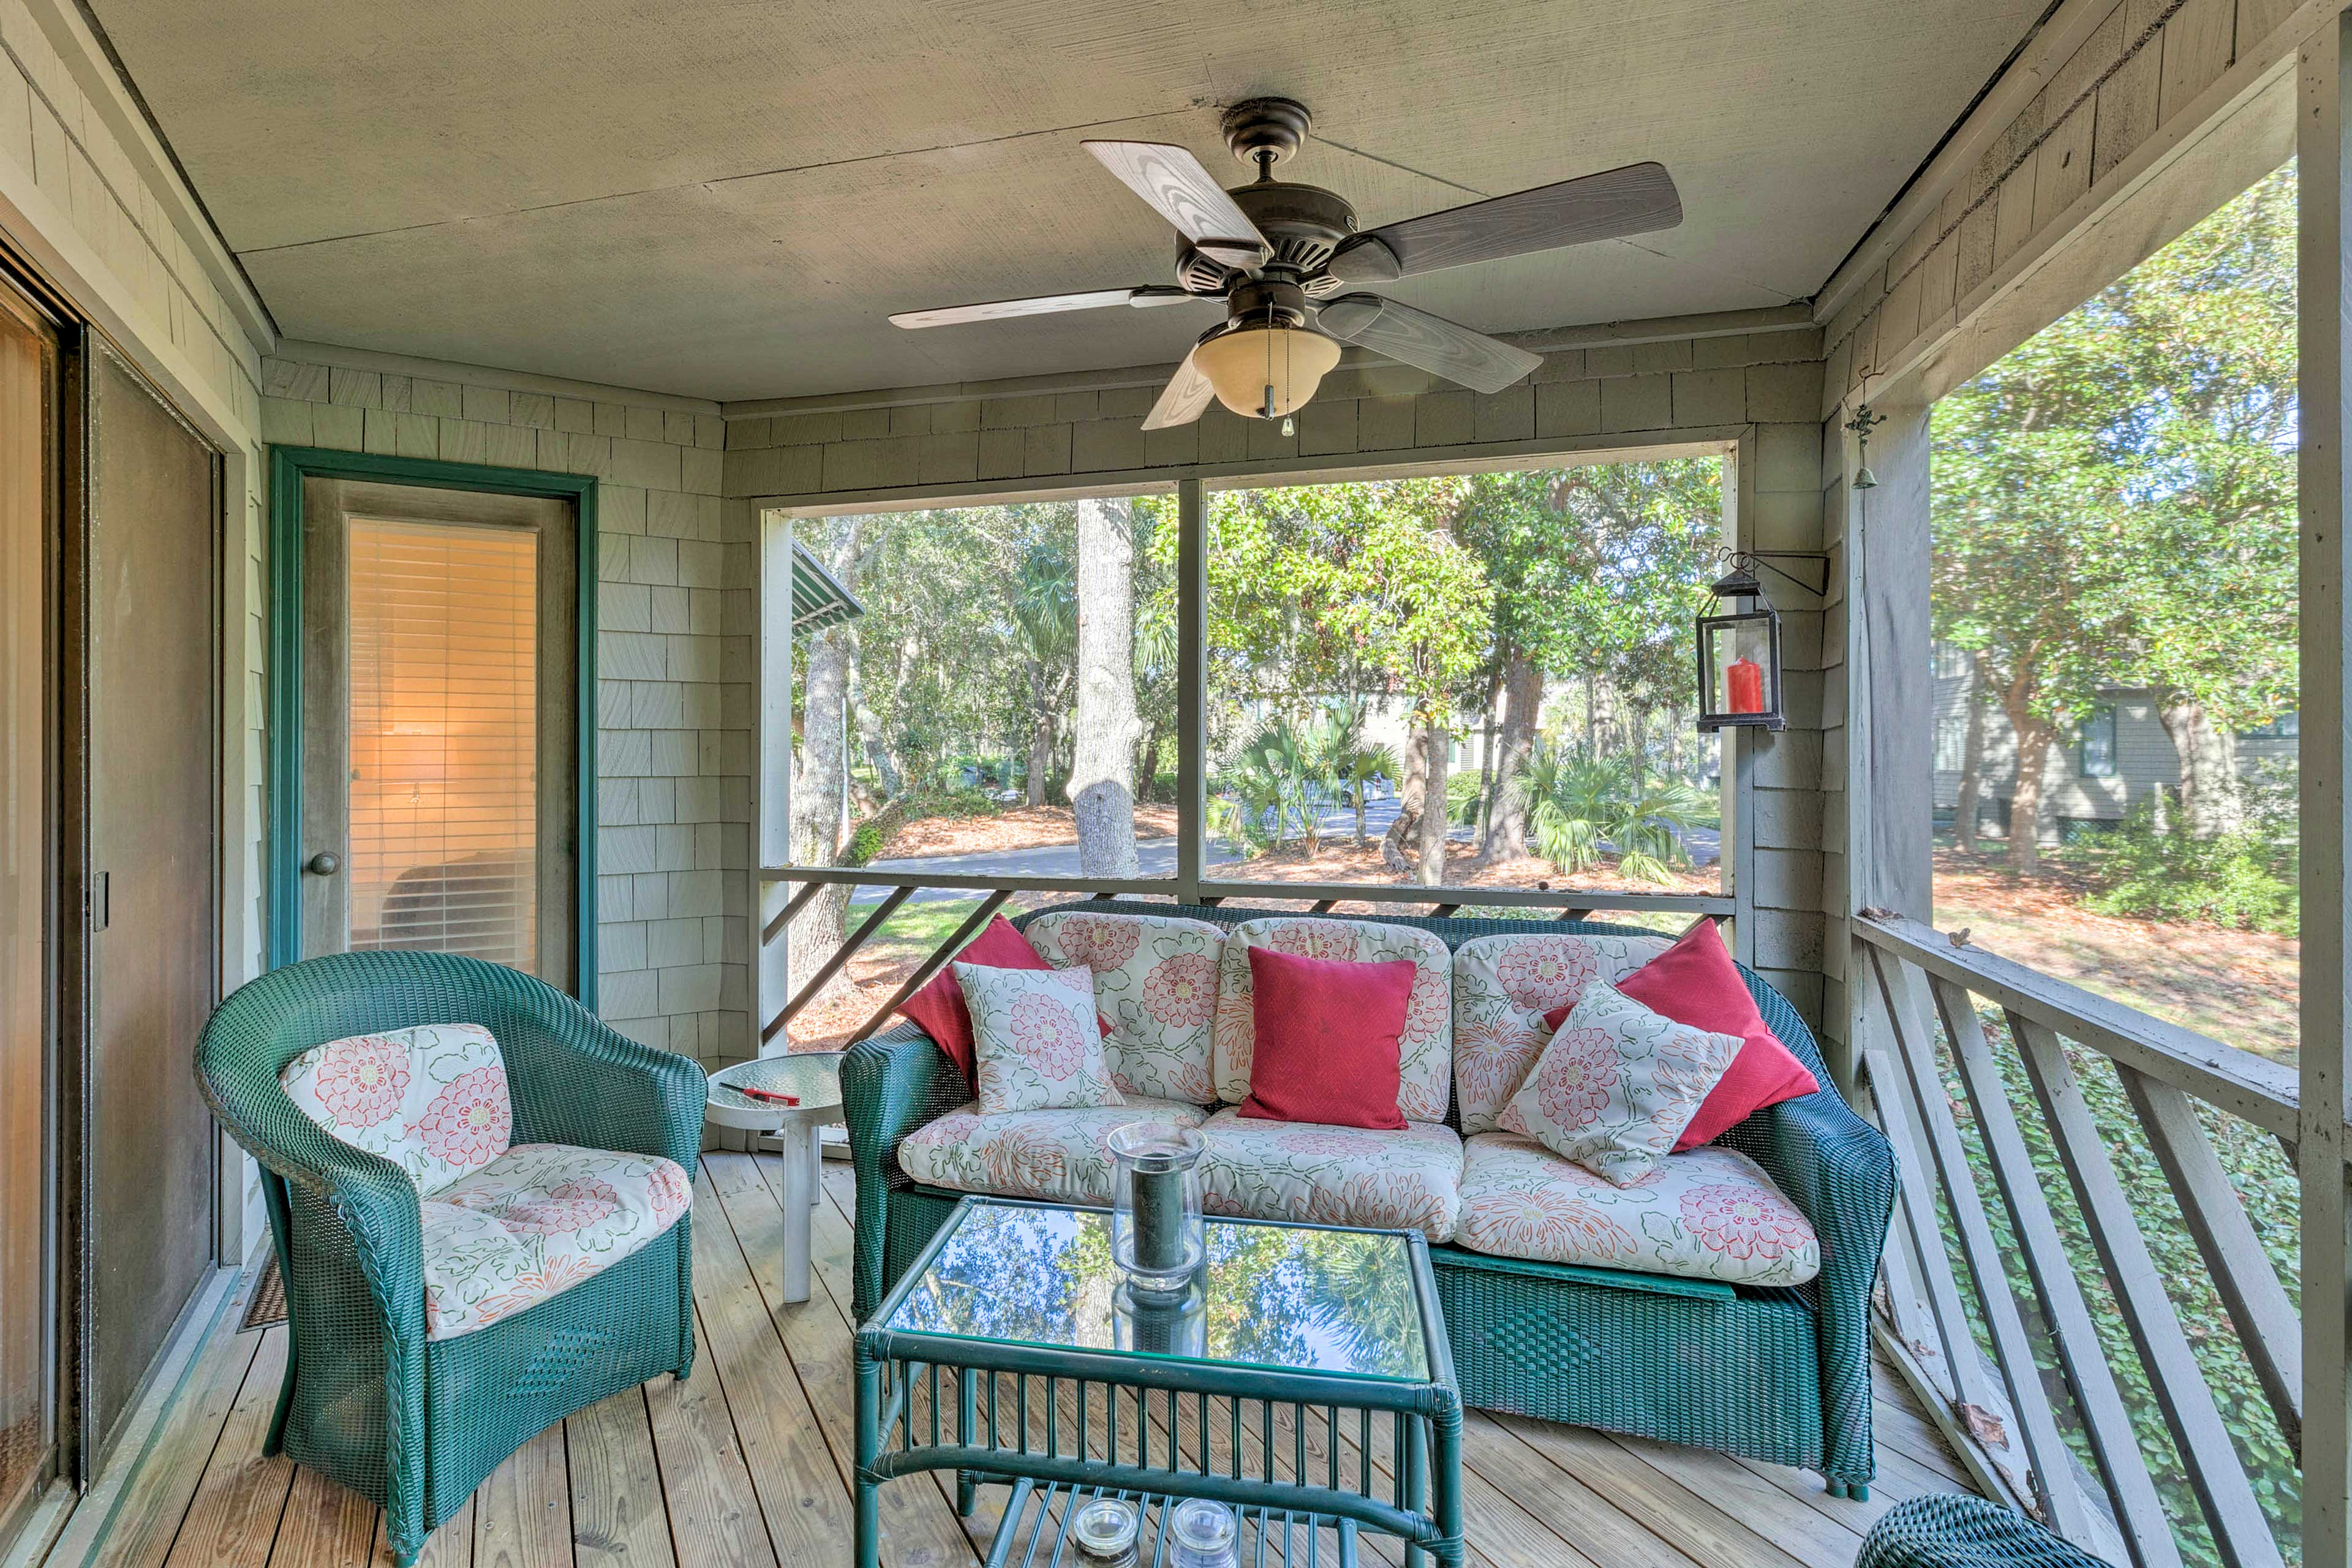 Relax outdoors on the screened-in porch.